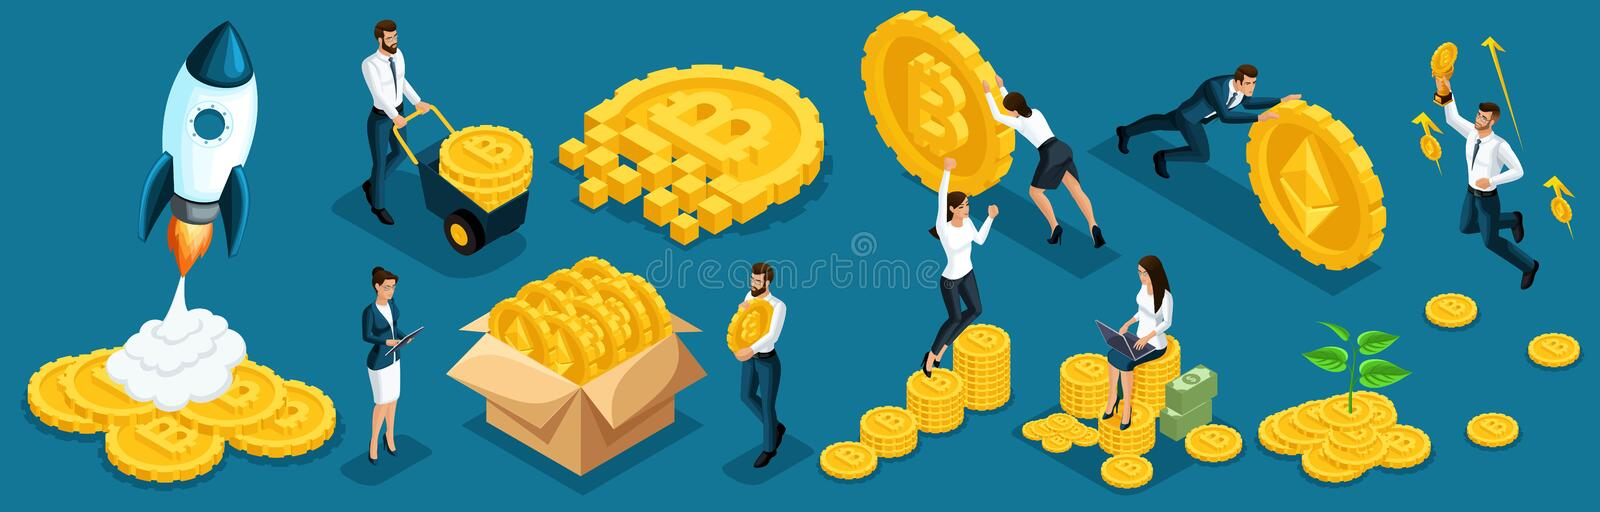 Isometric icons investors, speculators with ico blockchain concept, safe bitcoin, cryptocurrency mining, startup project. Horizont vector illustration